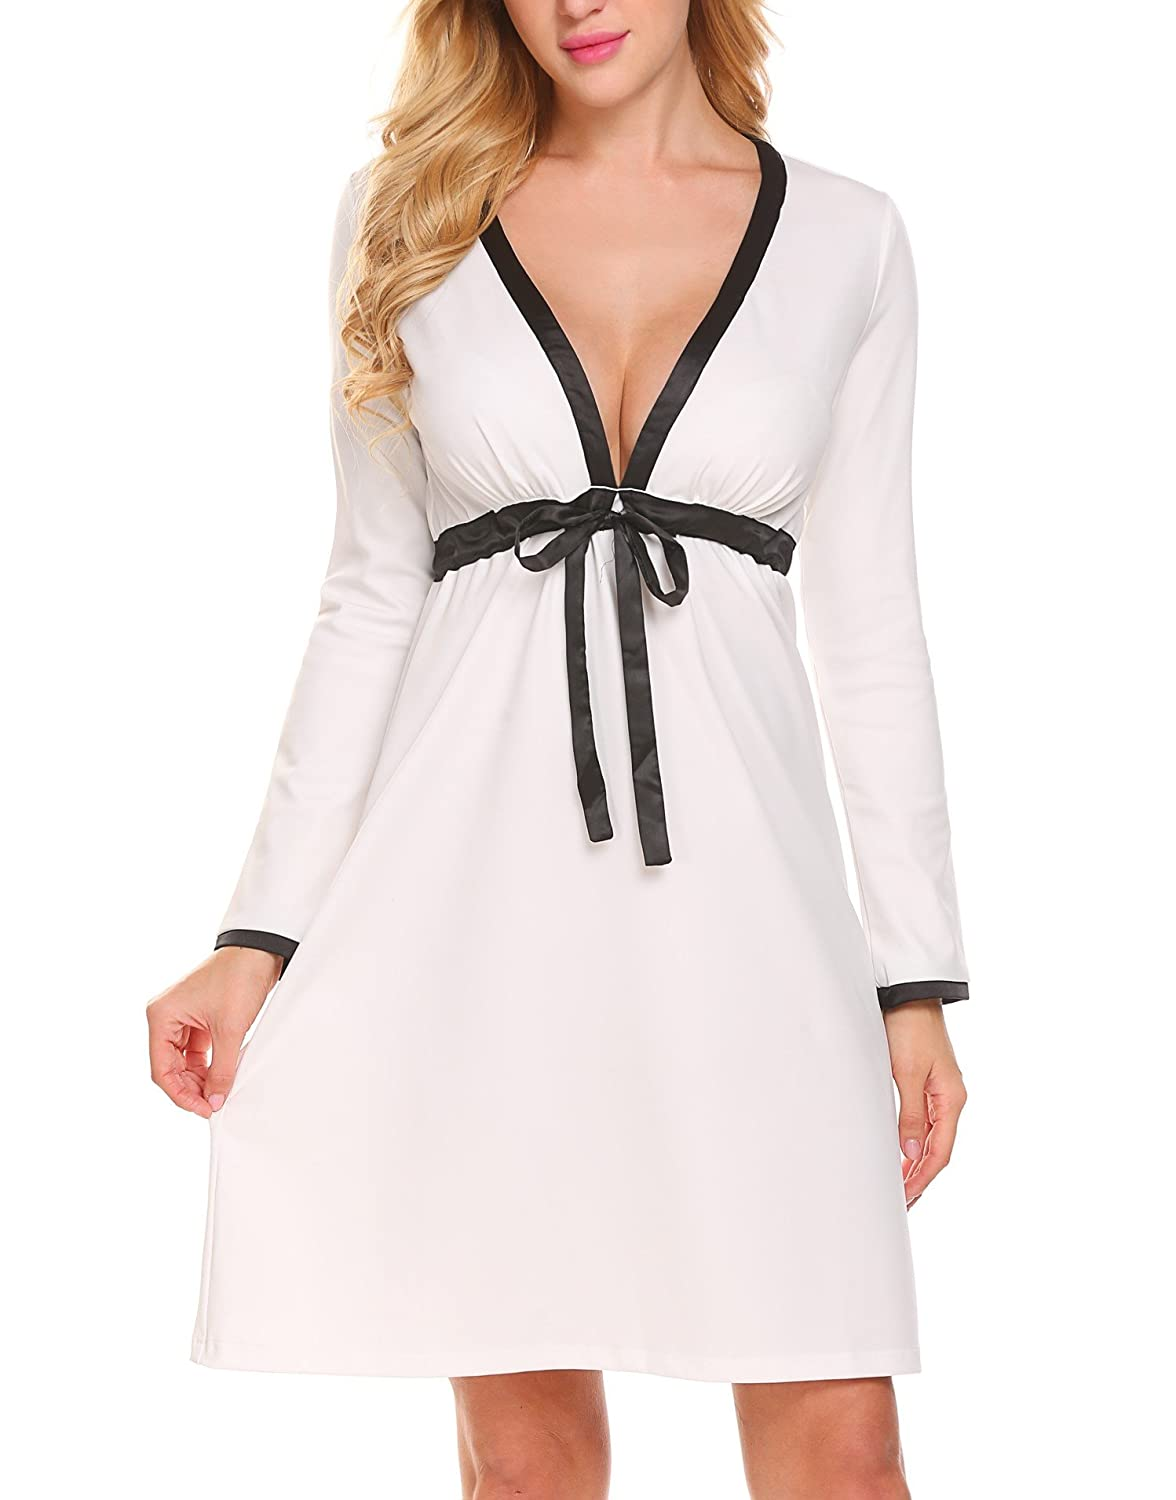 AIMADO Women's Sleepwear Sexy V Neck Long Sleeve Nightdress